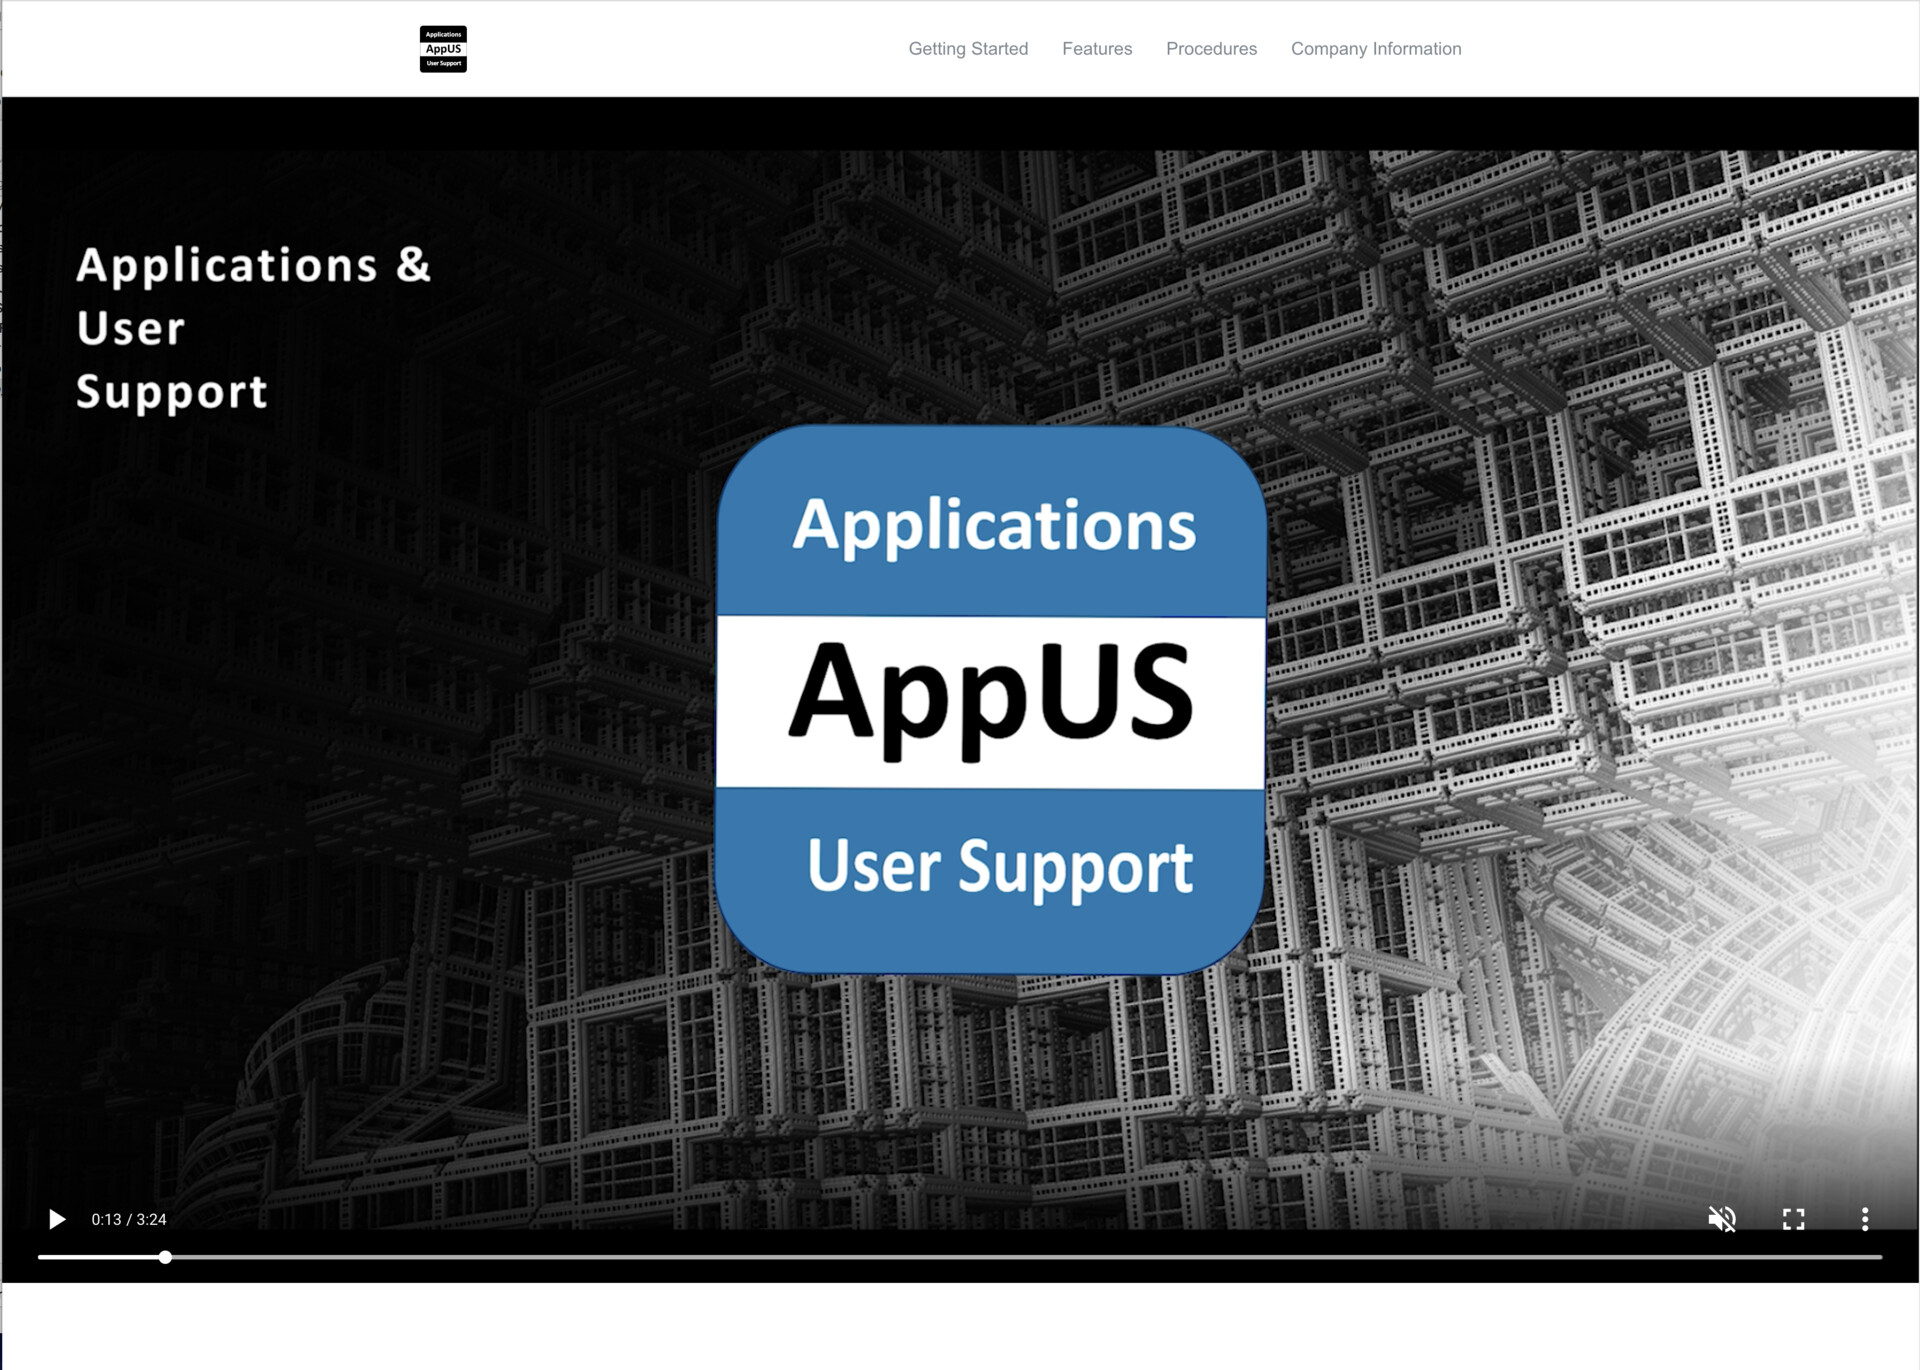 Earlier design iterations of AppUS' HTML 5 based help system